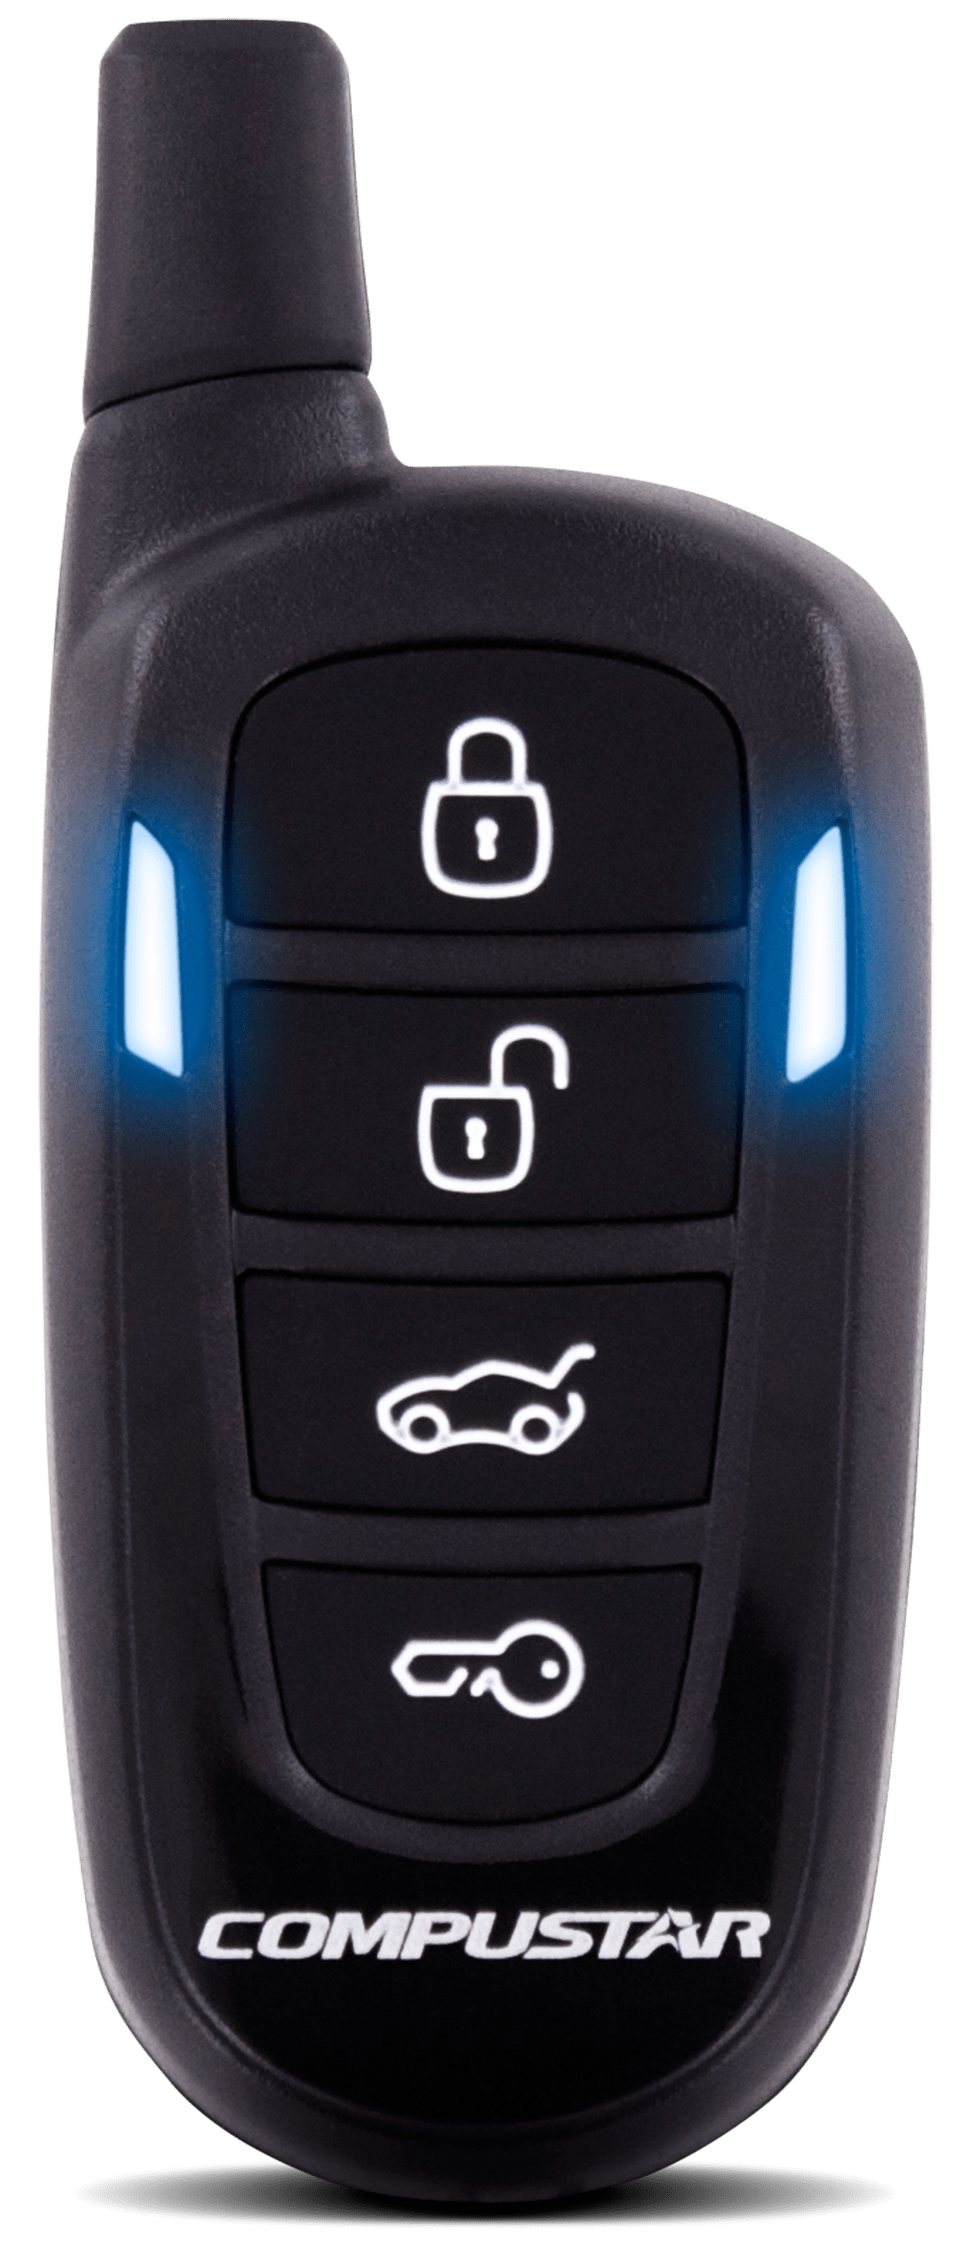 Automatic Car Starter >> Remote Car Starter Communication Systems Explained